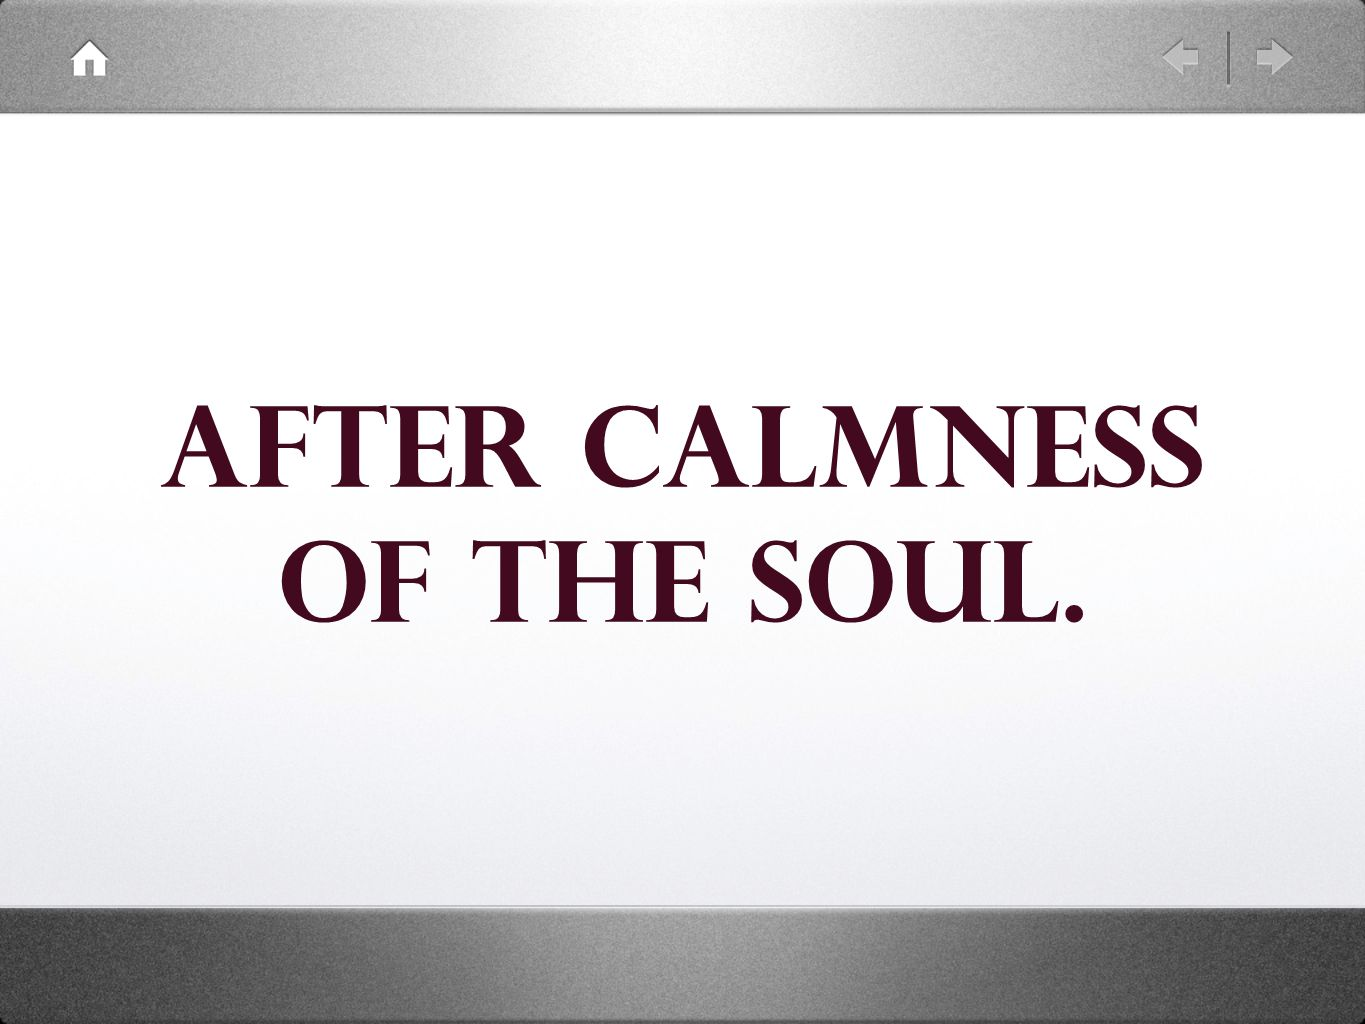 After calmness of the soul.